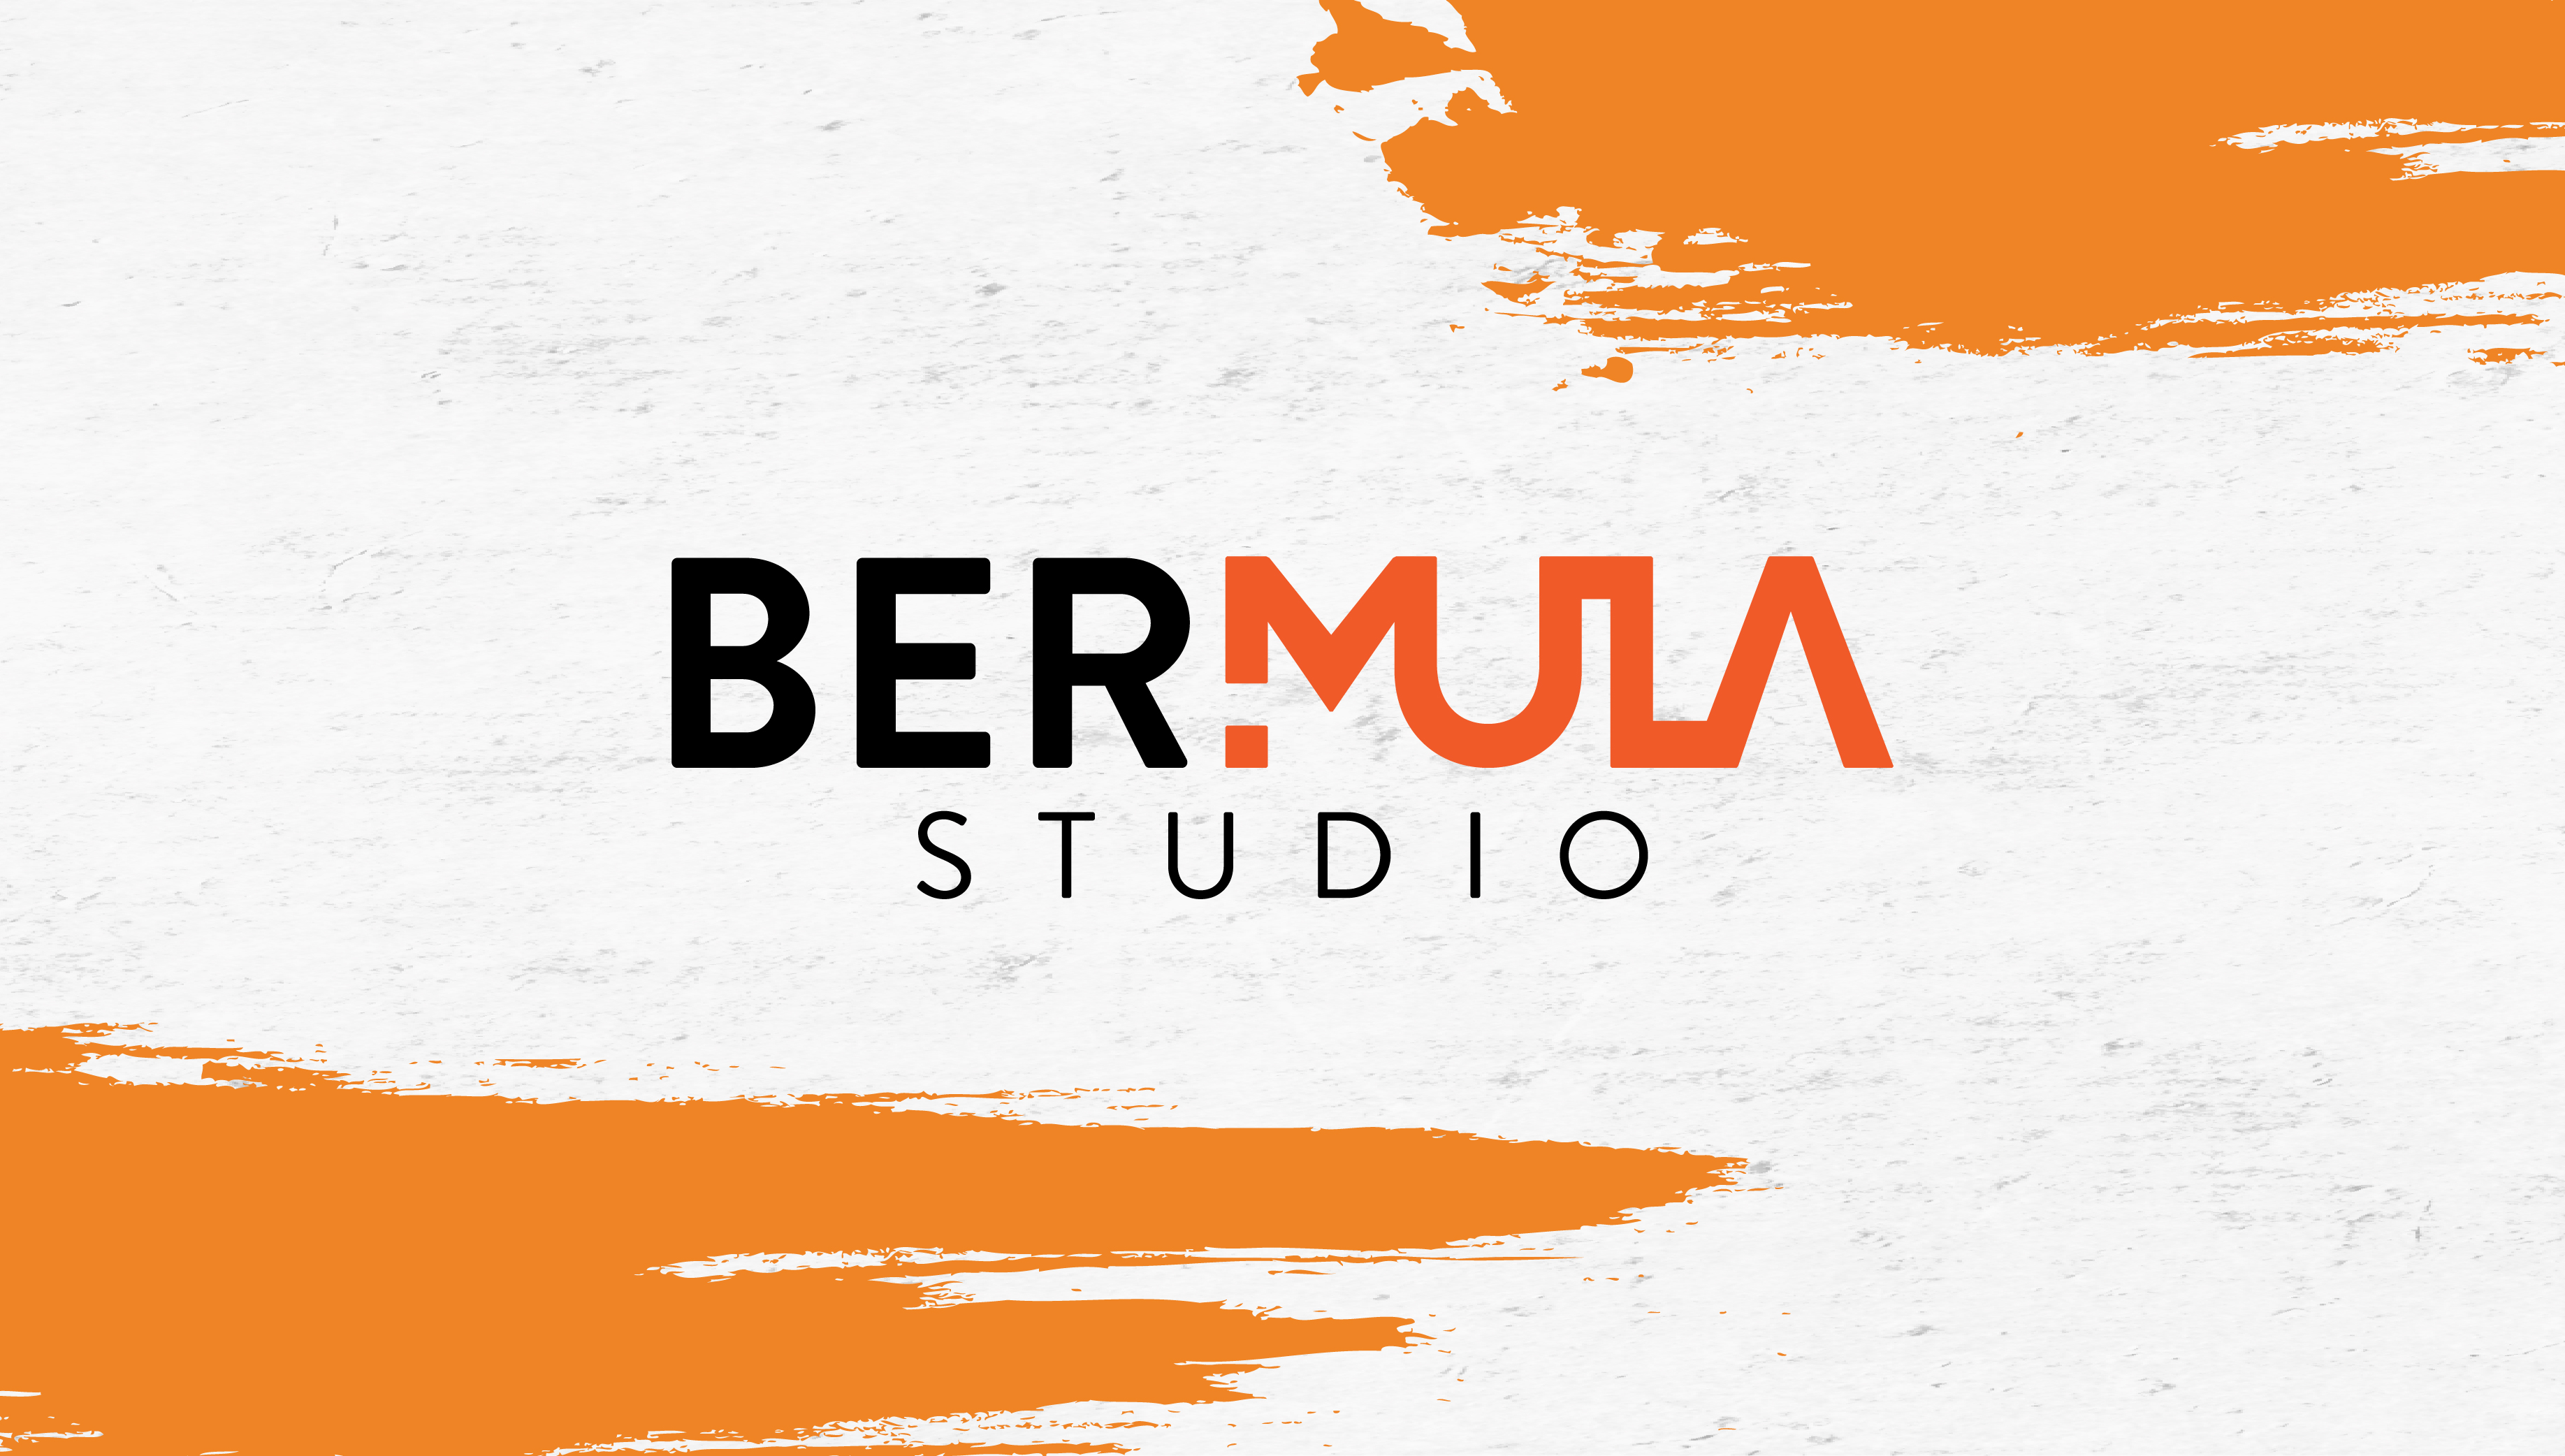 BerMULA Studio : For Creators & Content Makers